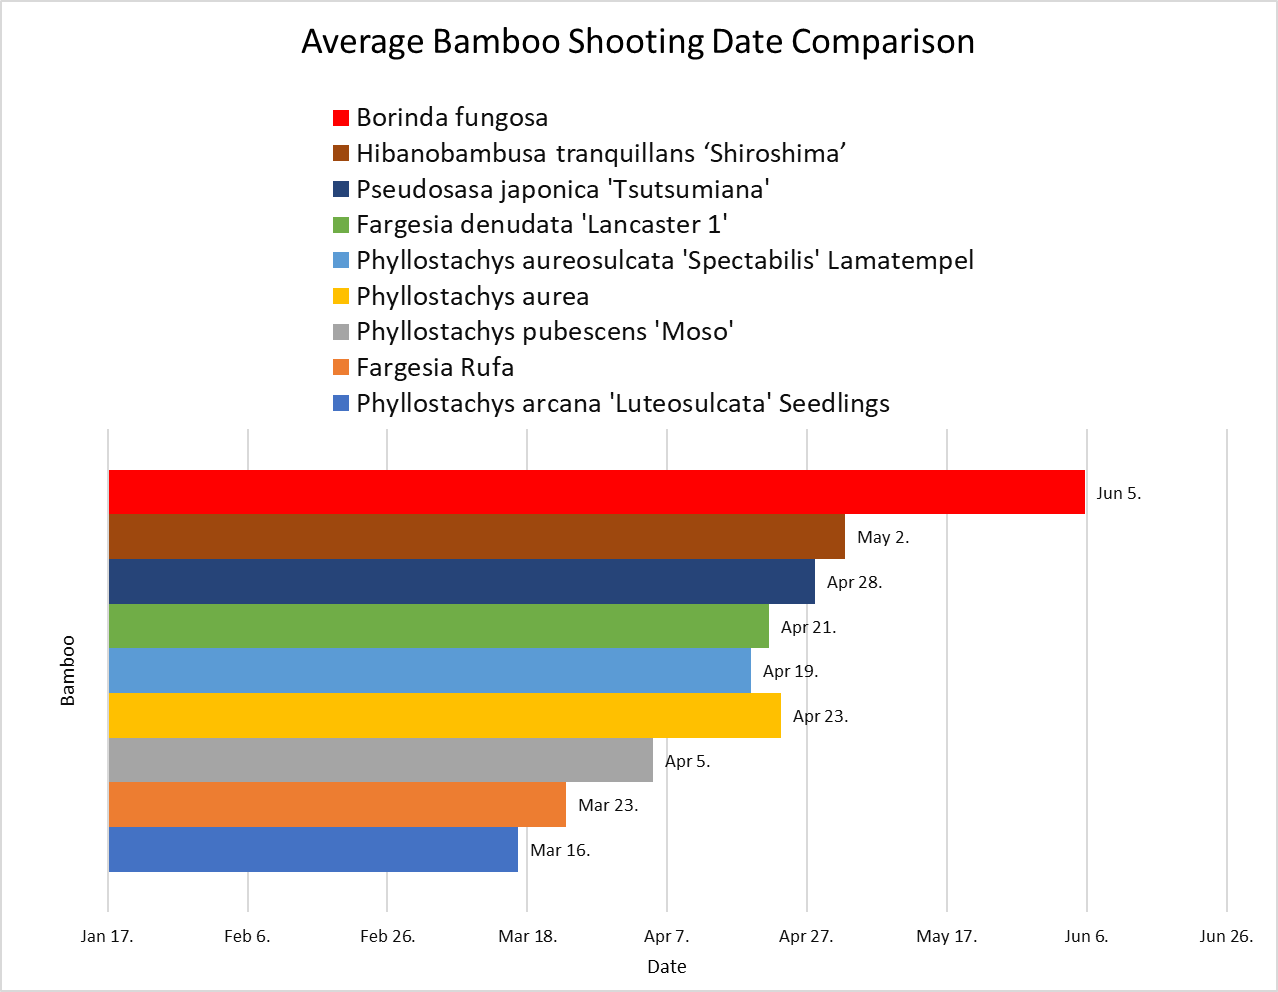 Comparison of bamboo shooting dates